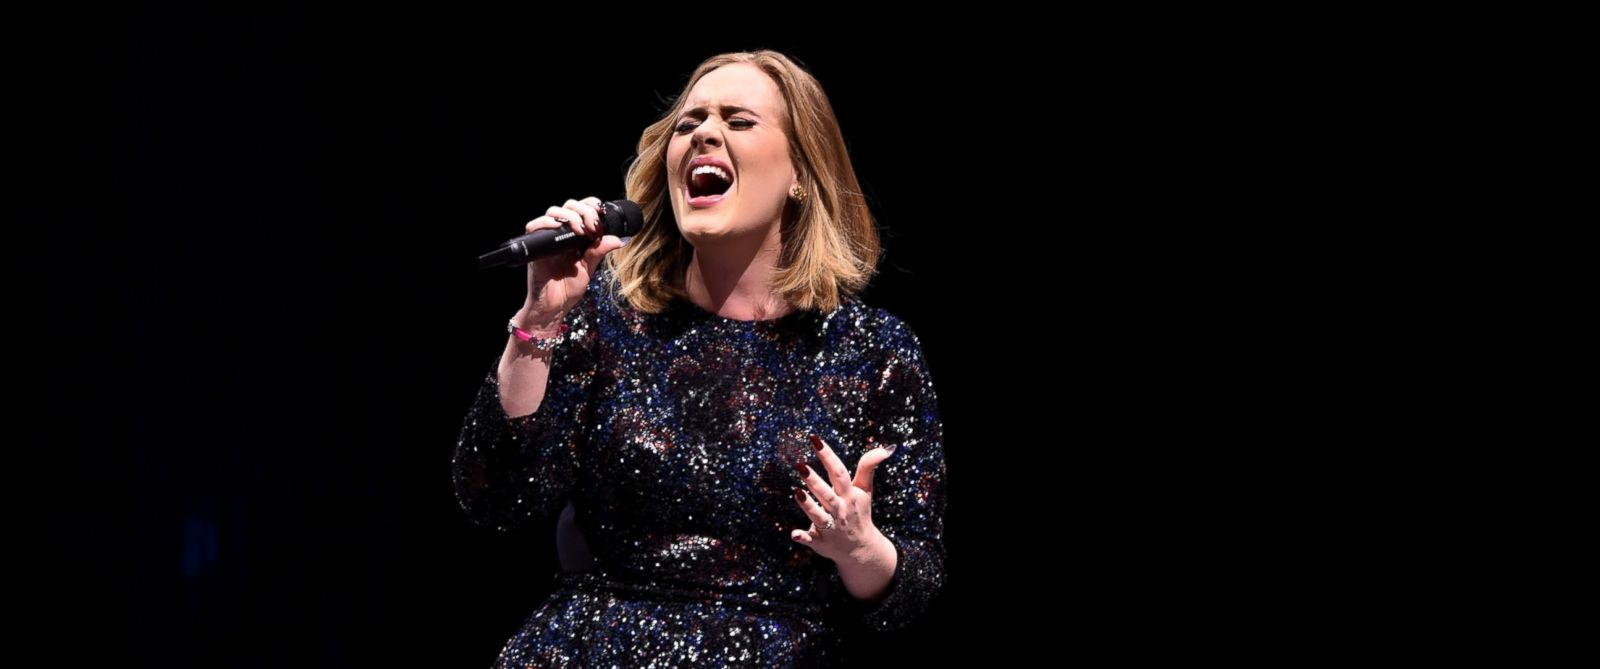 PHOTO: Adele performs at The SSE Hydro on March 25, 2016 in Glasgow, Scotland.